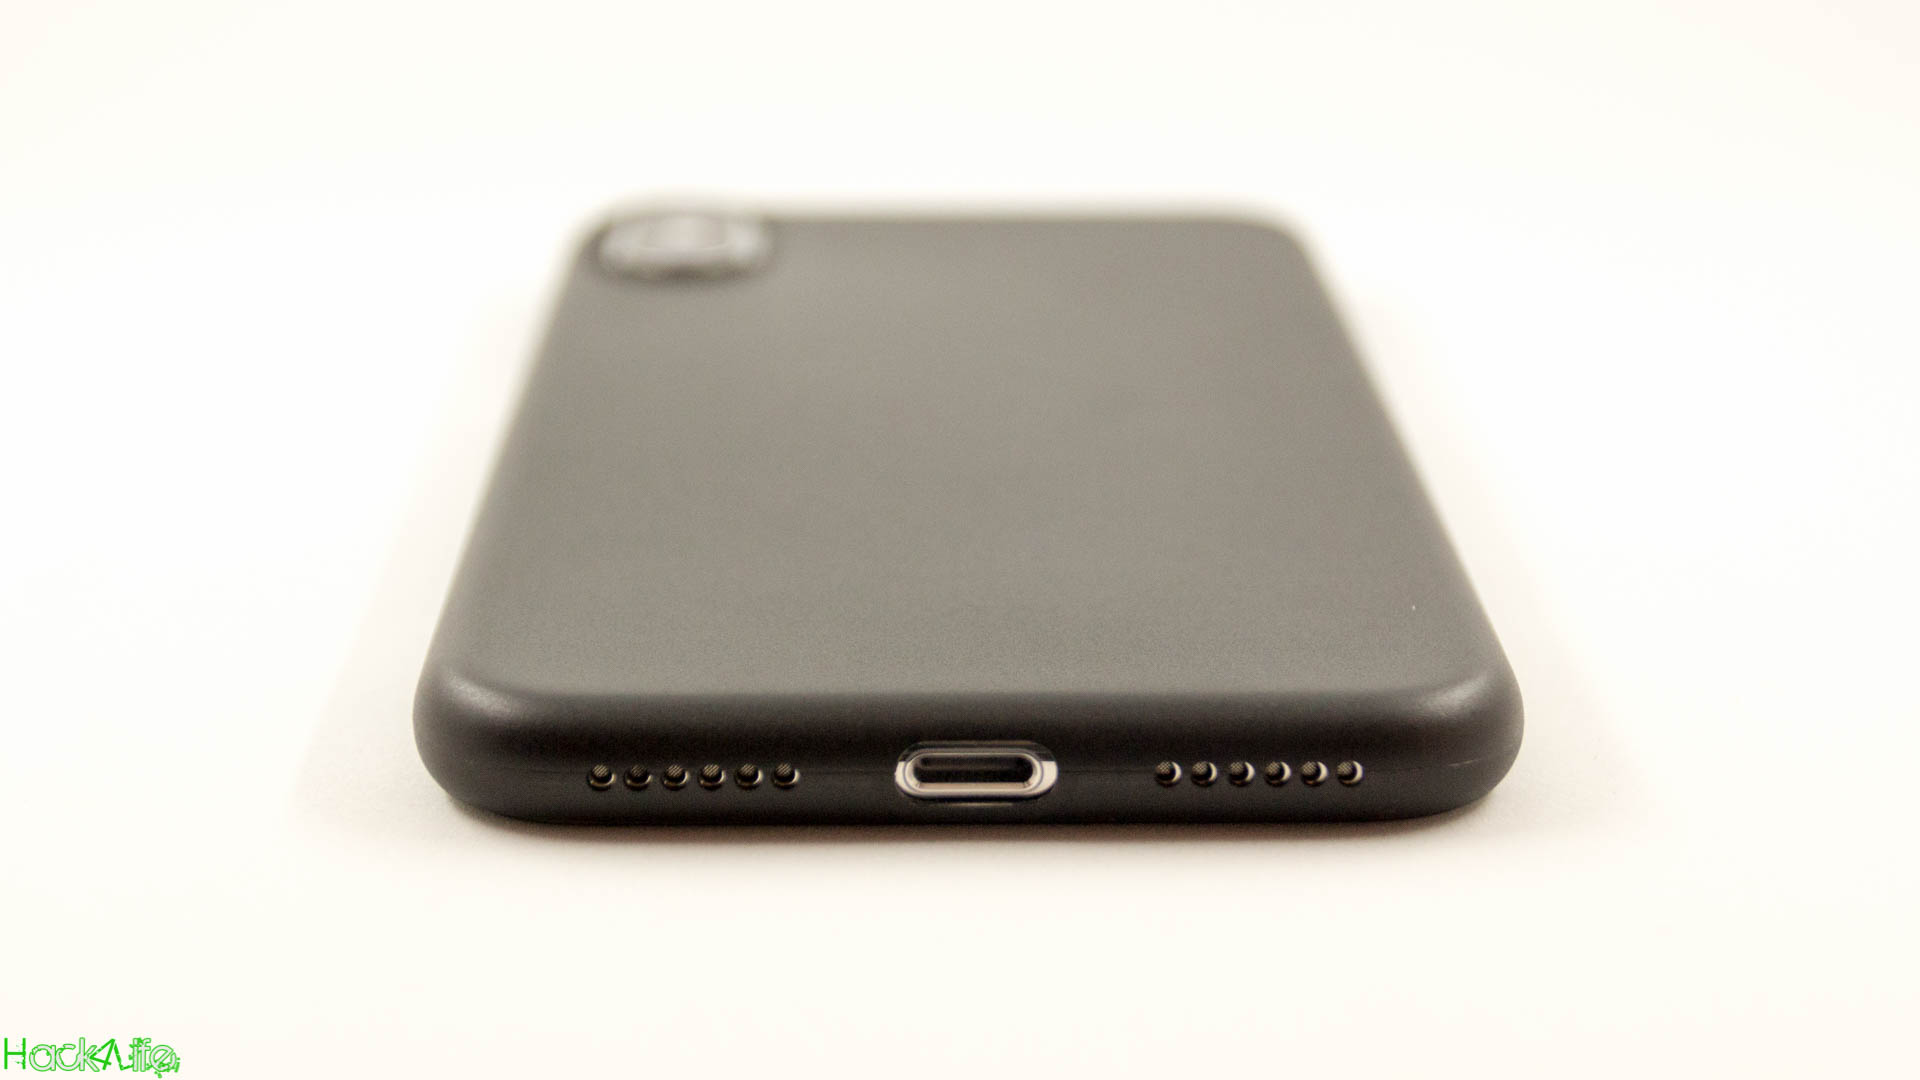 Genaue Aussparungen für den Lautsprecher und den Lightning Anschluss beim iPhone X mit der ultraslim Case von CellBee, Test, Review, Hack4Life, Fabian Geissler